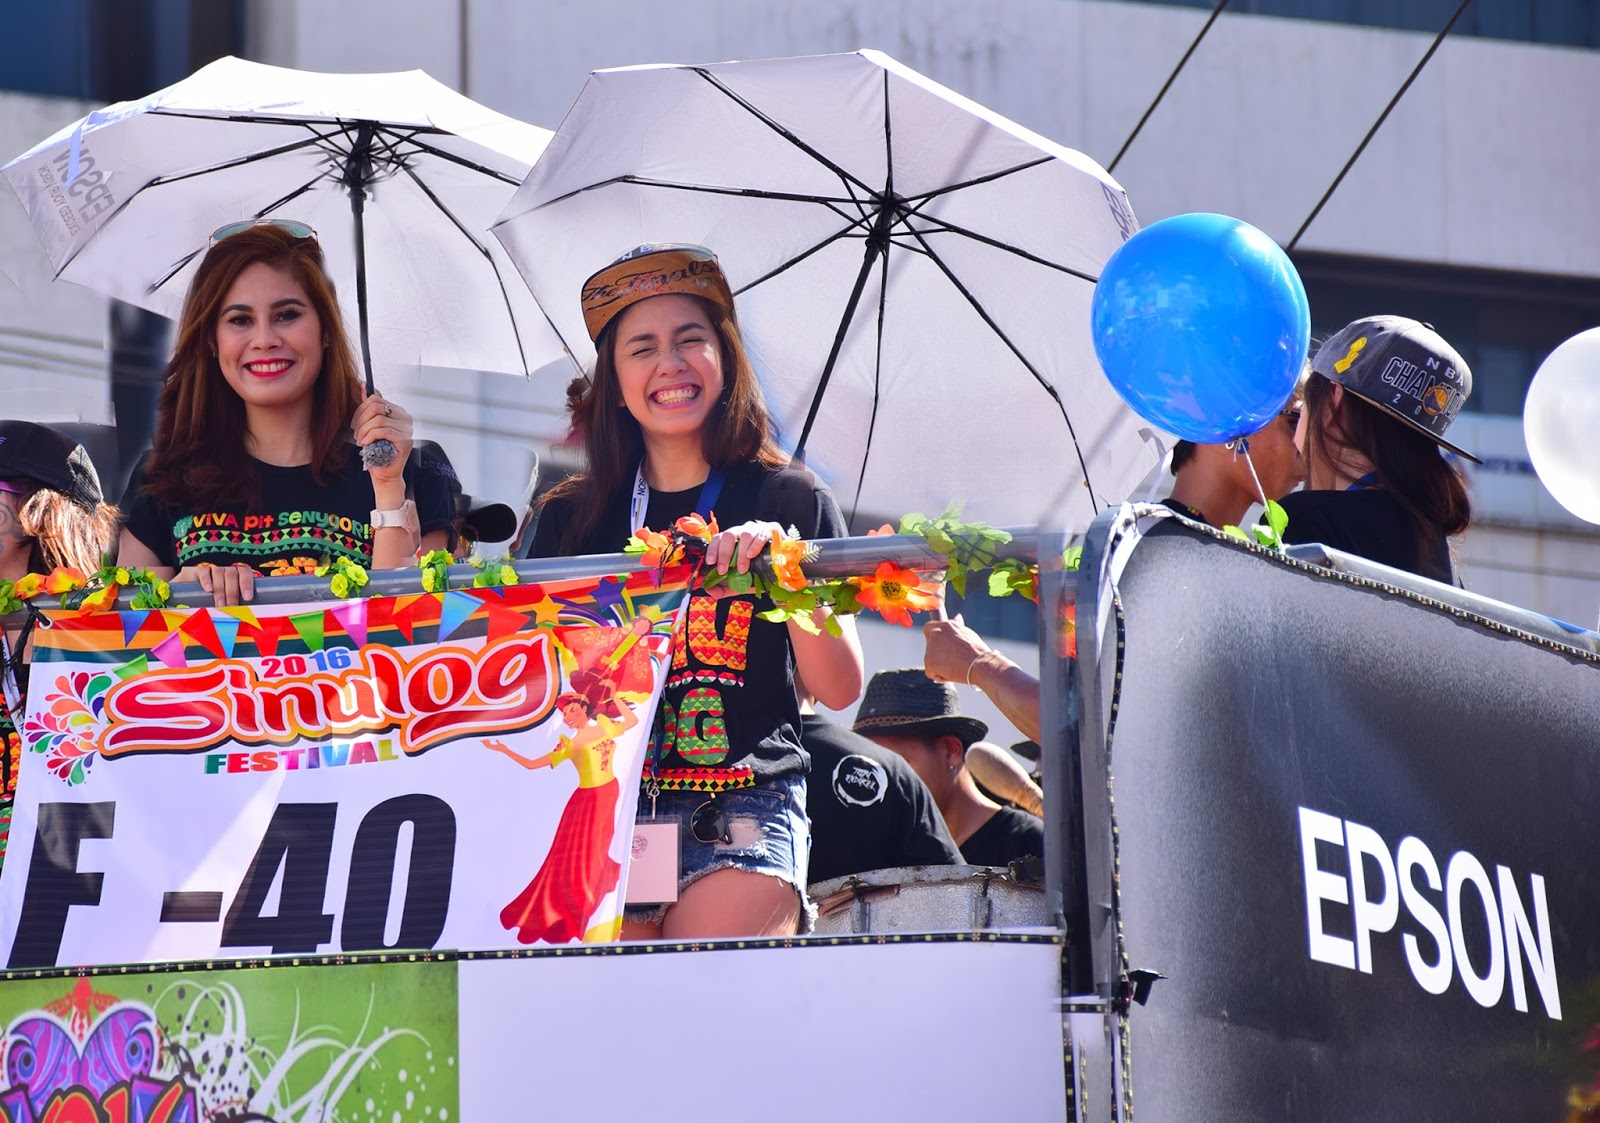 Epson Philippines Strengthens Commitment in Cebu through Sinulog Festival